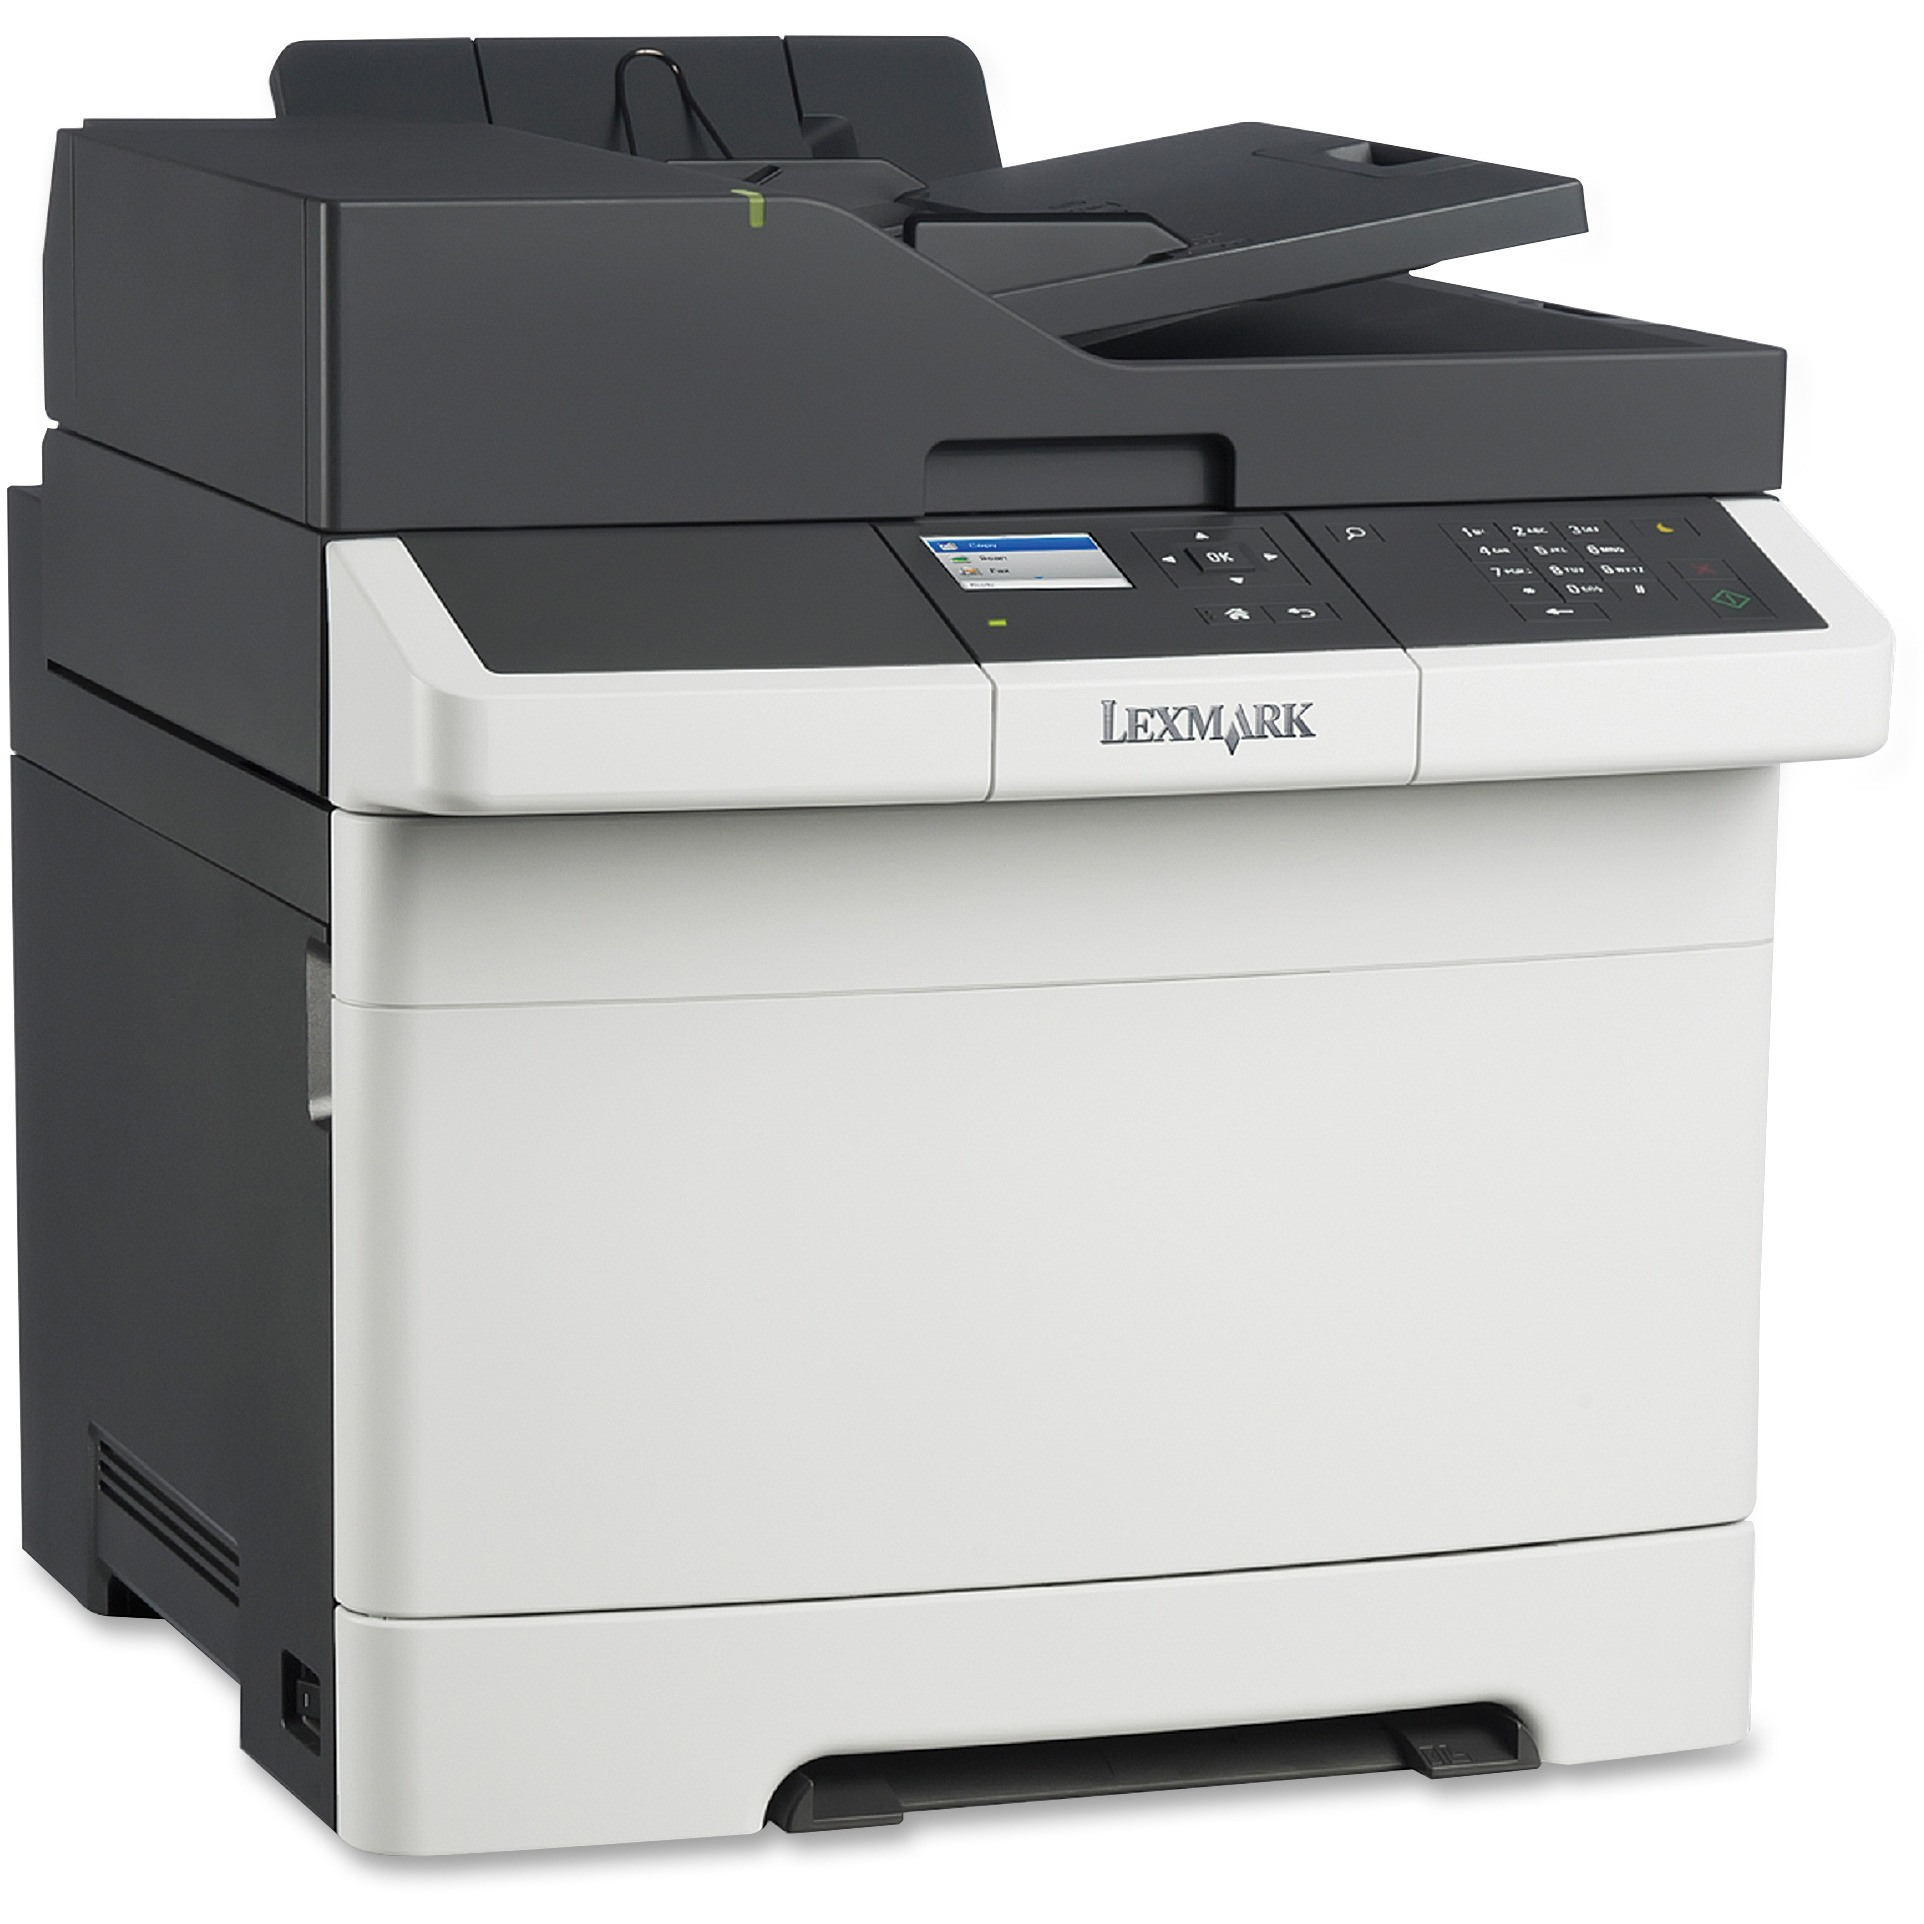 Lexmark CX310DN Laser Multifunction Printer - Color - Plain Paper Print - Desktop, Black, White